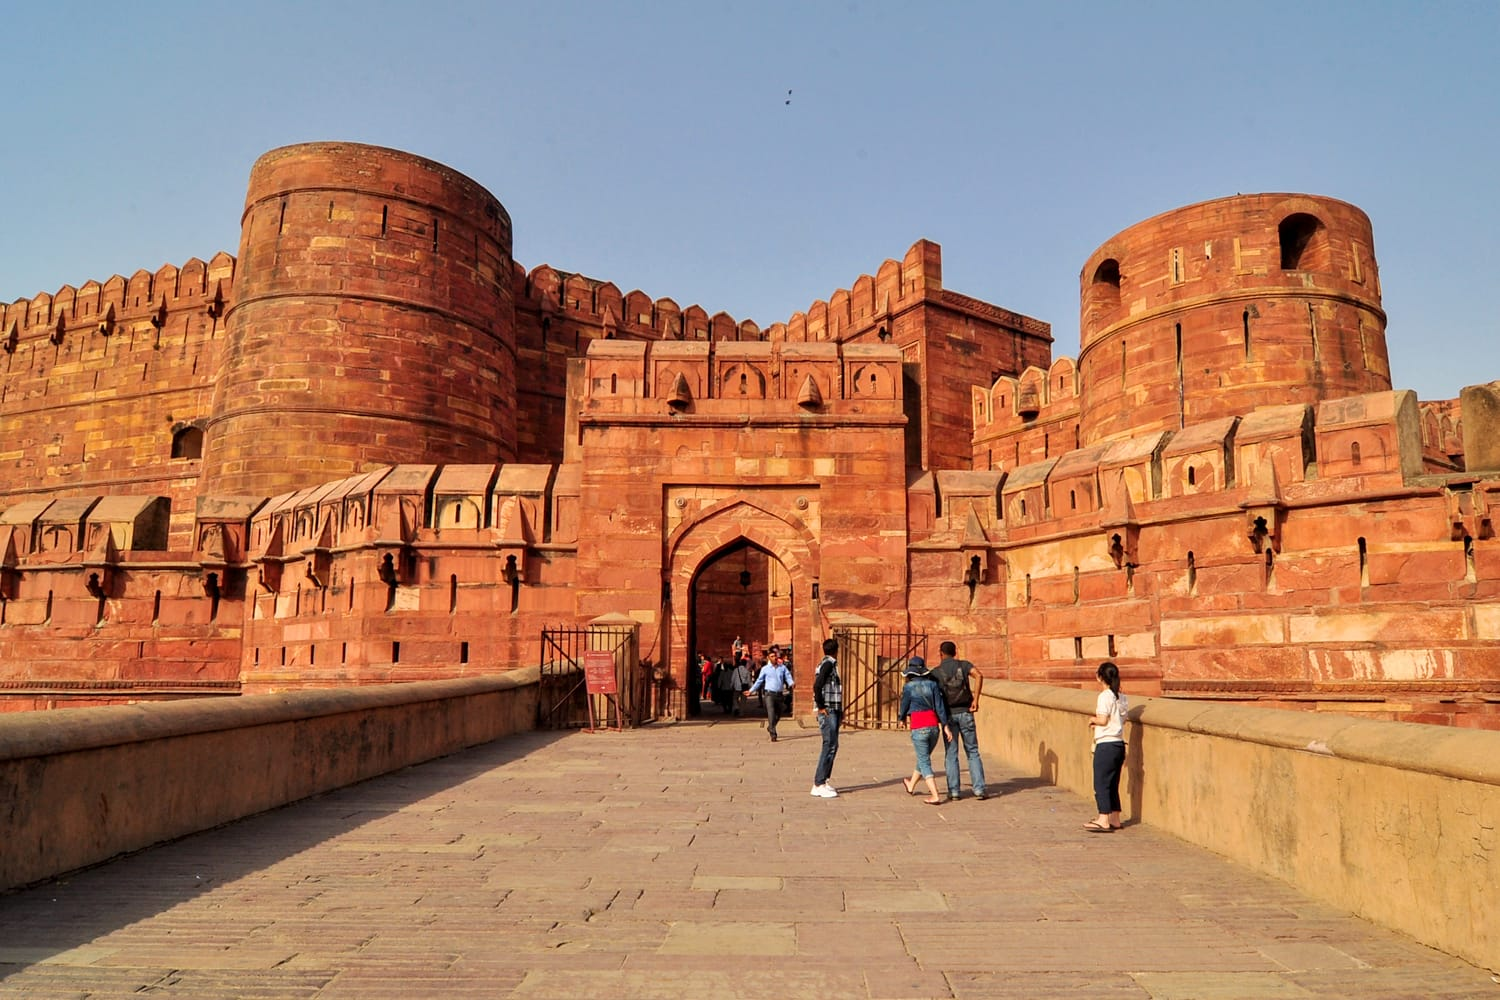 Agra Red Fort, a Unesco World Heritage site, and one of the biggest tourist highlights, just 2 km of Taj Mahal. Built by several Mughal emperors from XV to XVI centuries. Uttar Pradesh, India.